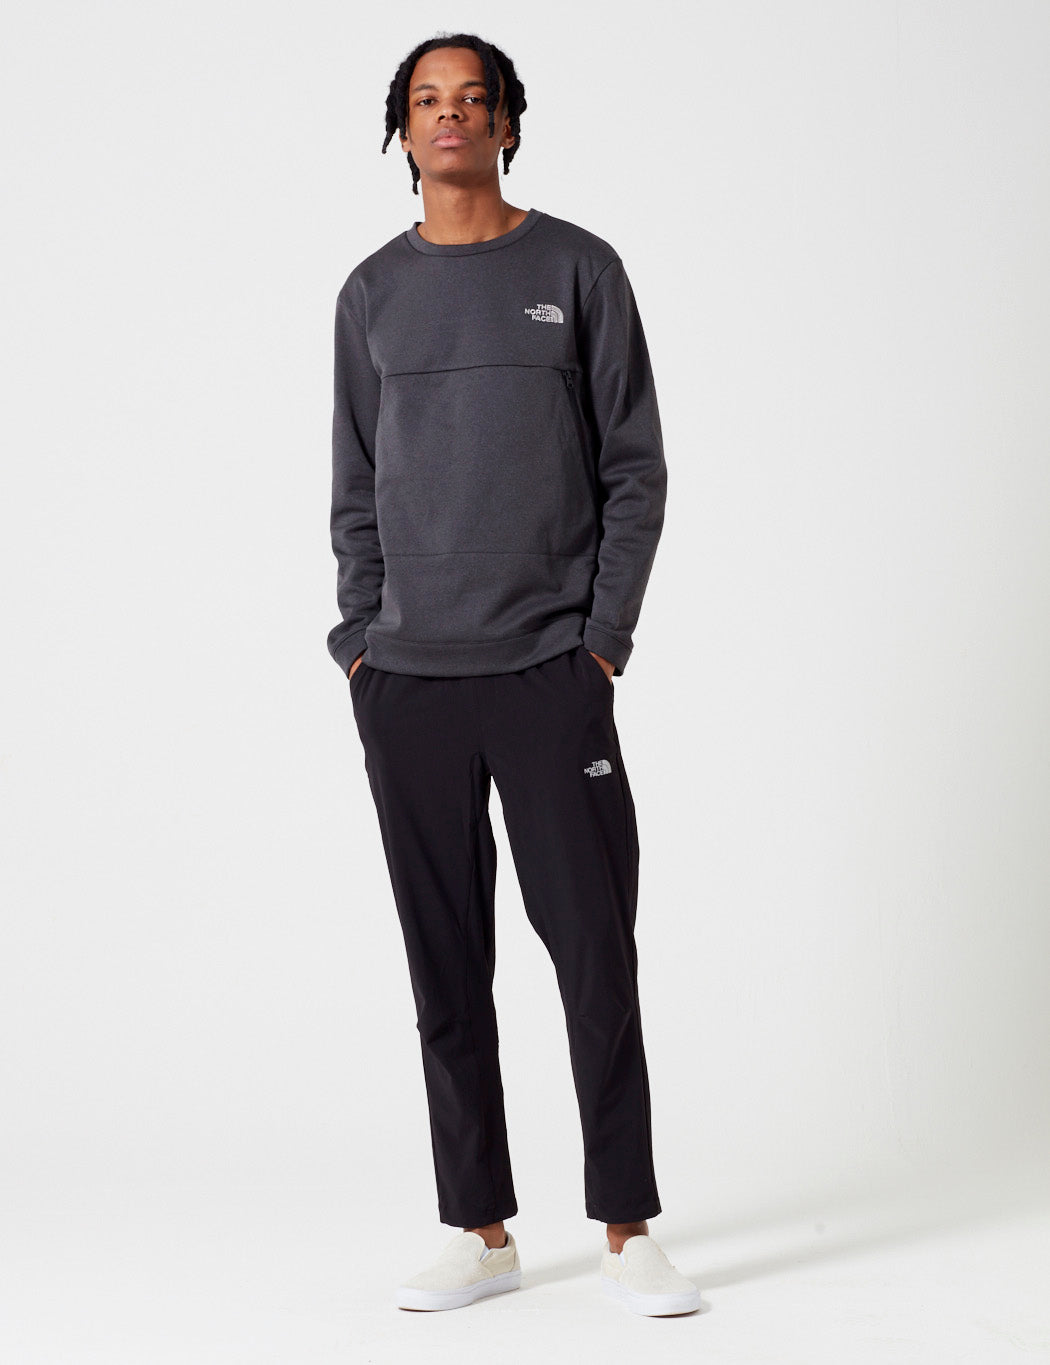 North Face Black Label Tech Crew Sweatshirt in TNF Black 0f412a84a0da